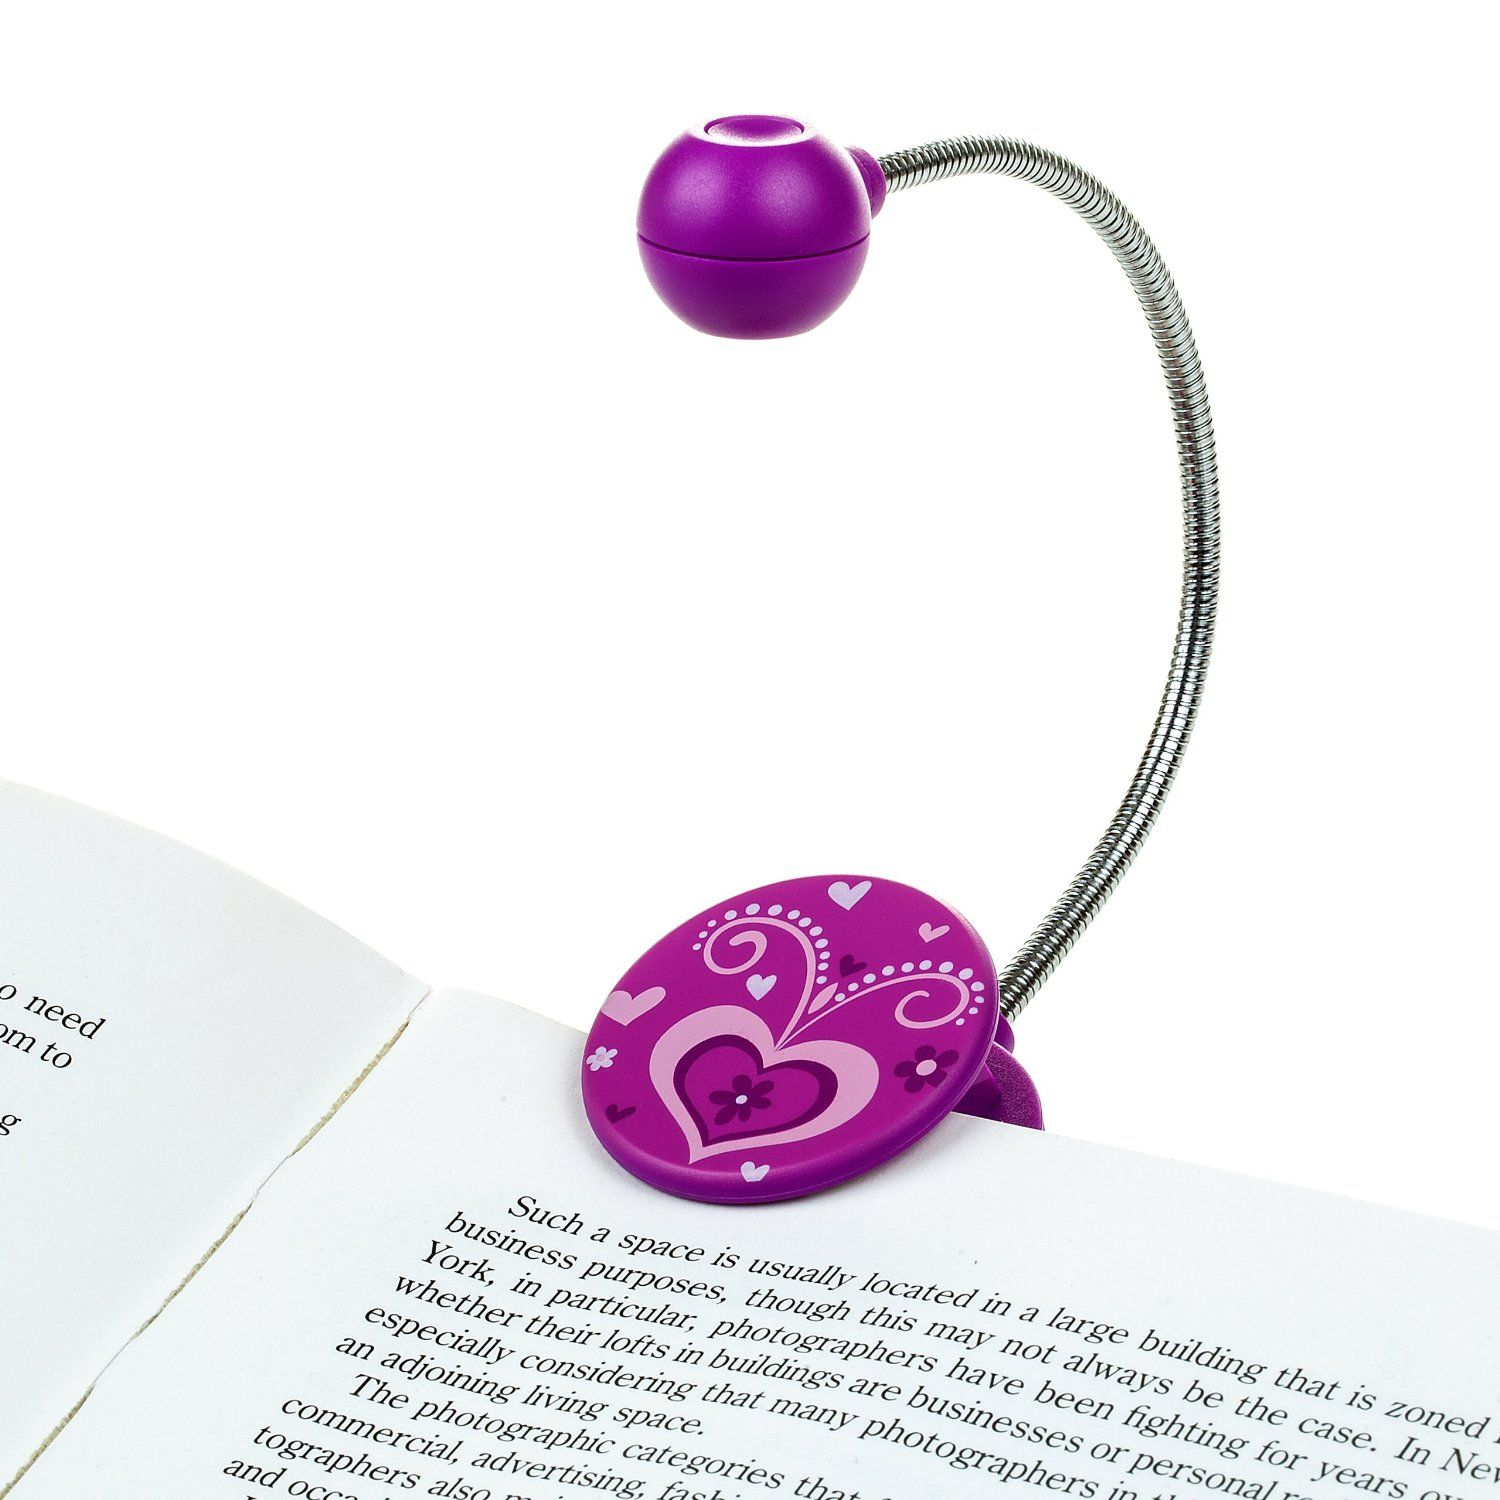 Amazon Book Light Inspiration Disc Led Reading Lightwithit  Purple  Led Book Light With Design Inspiration